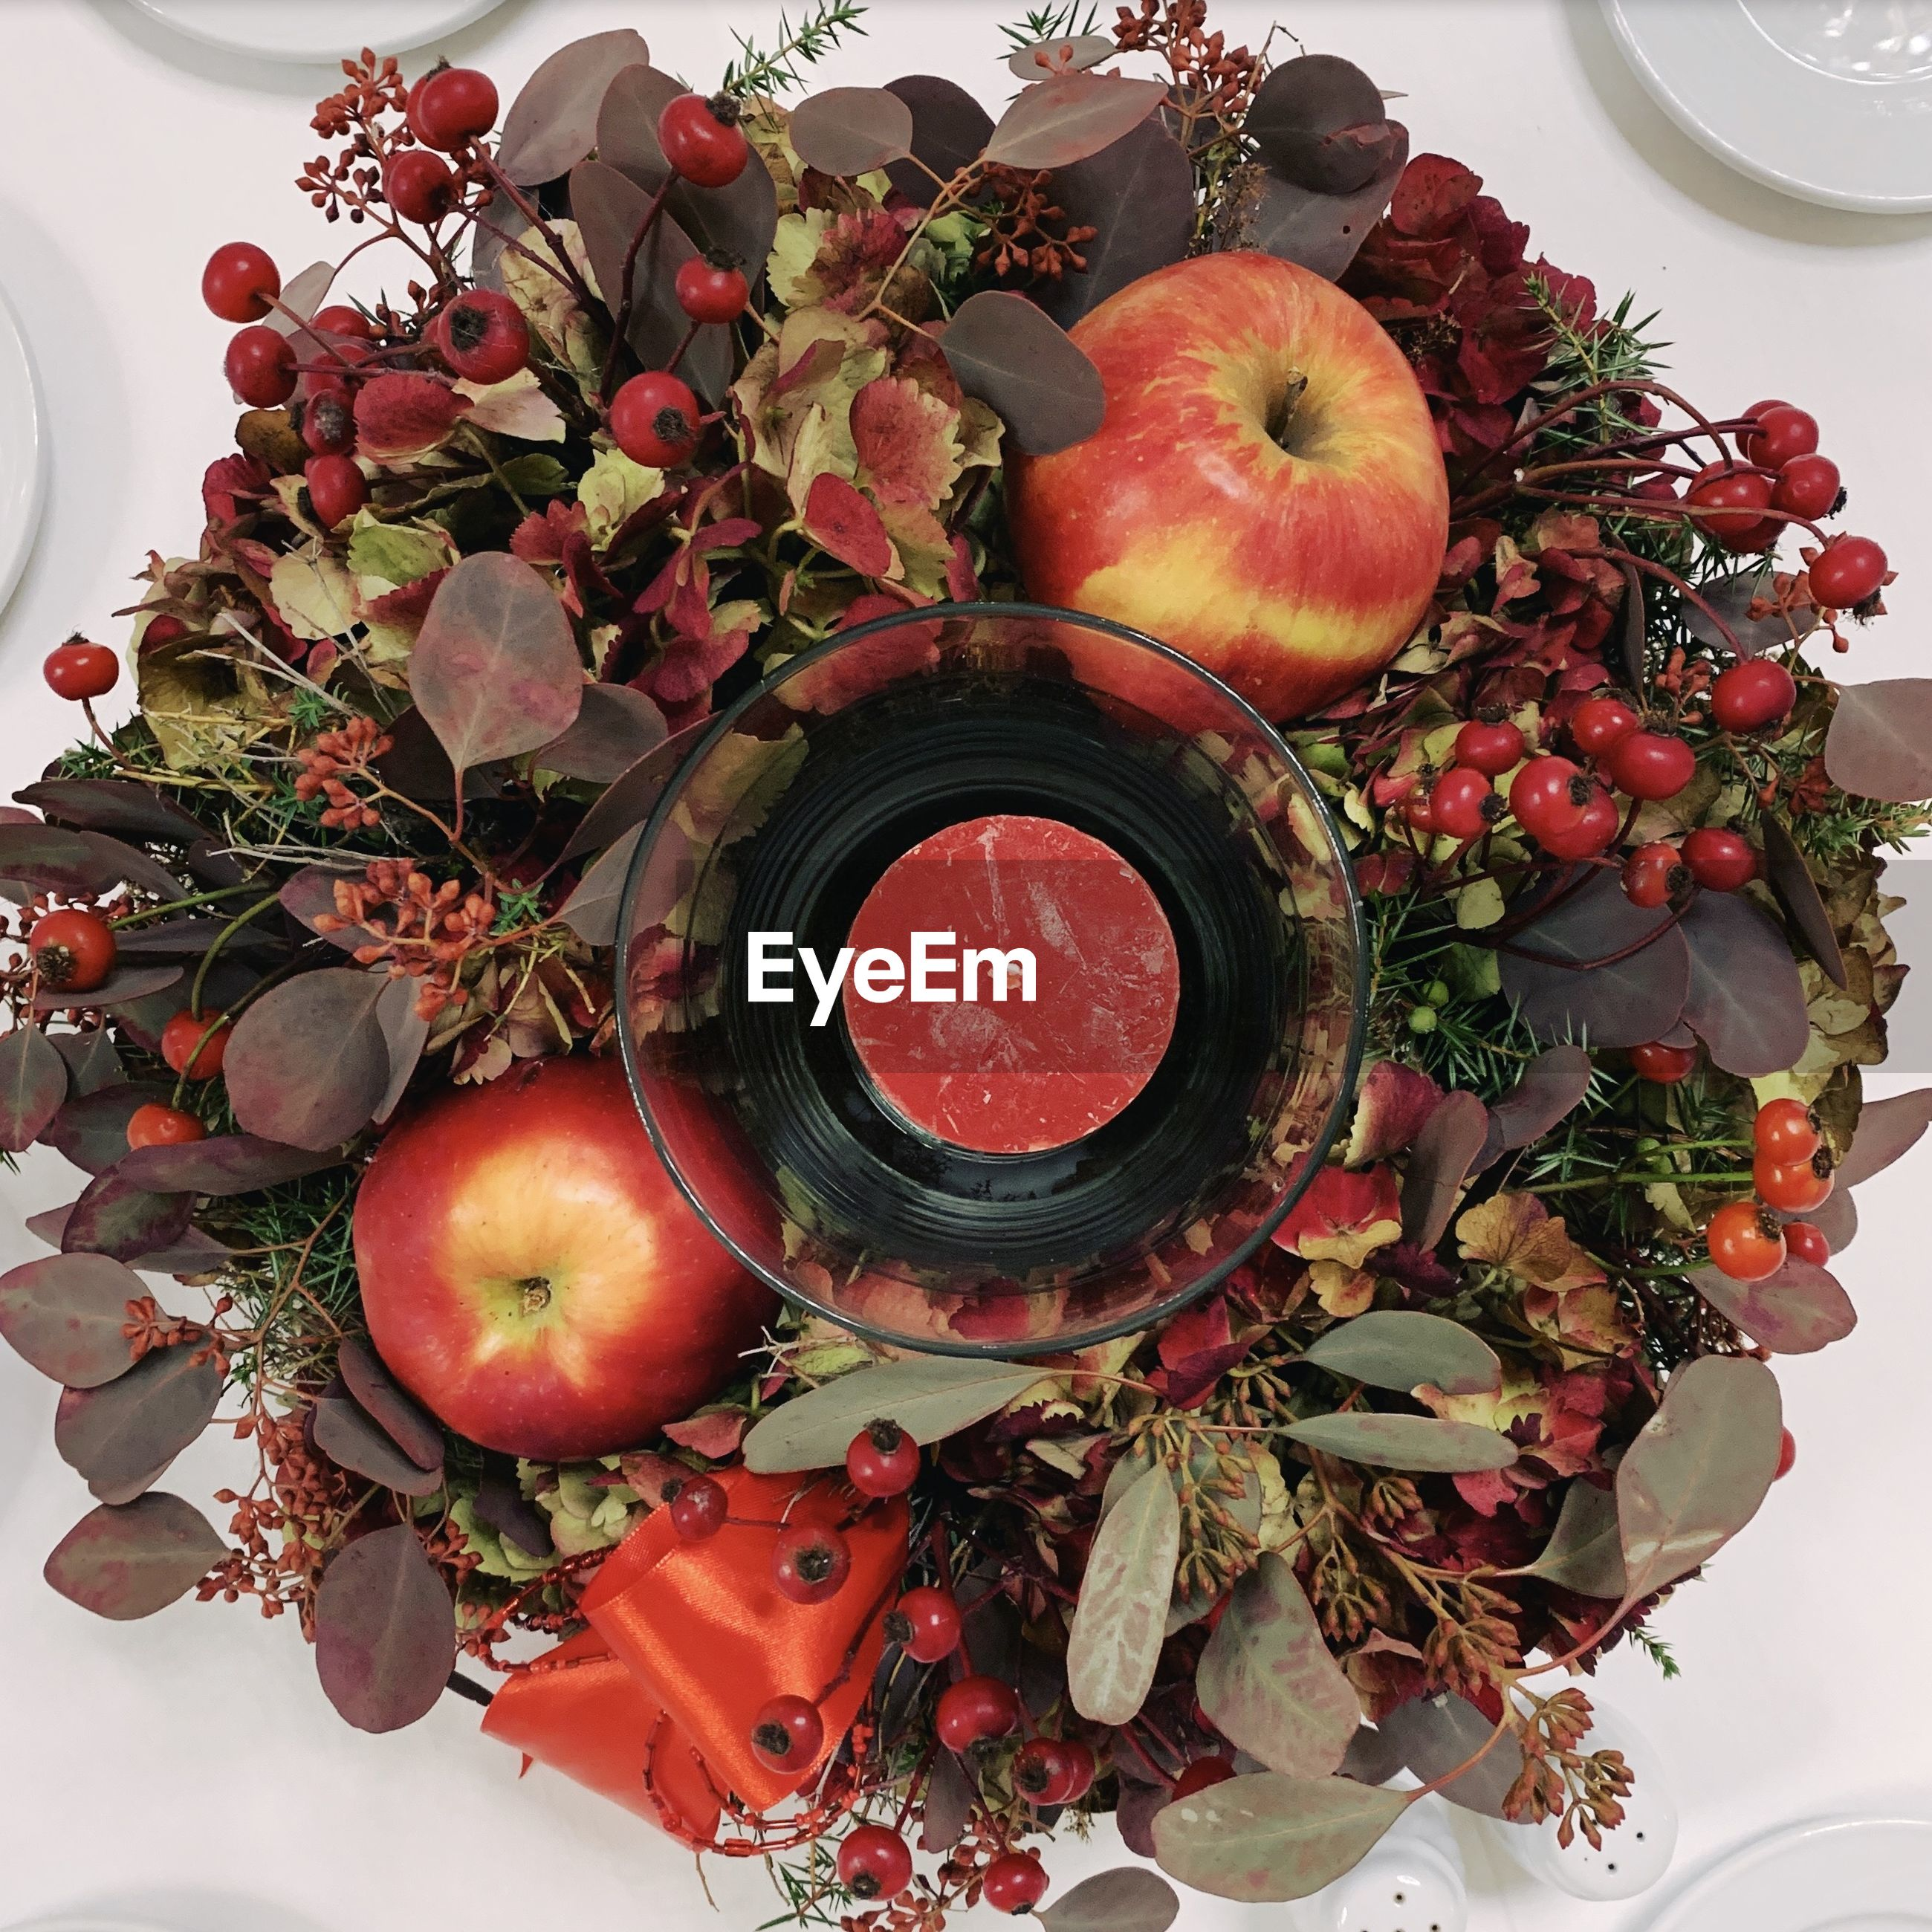 HIGH ANGLE VIEW OF APPLES AND RED CHILI ON TABLE